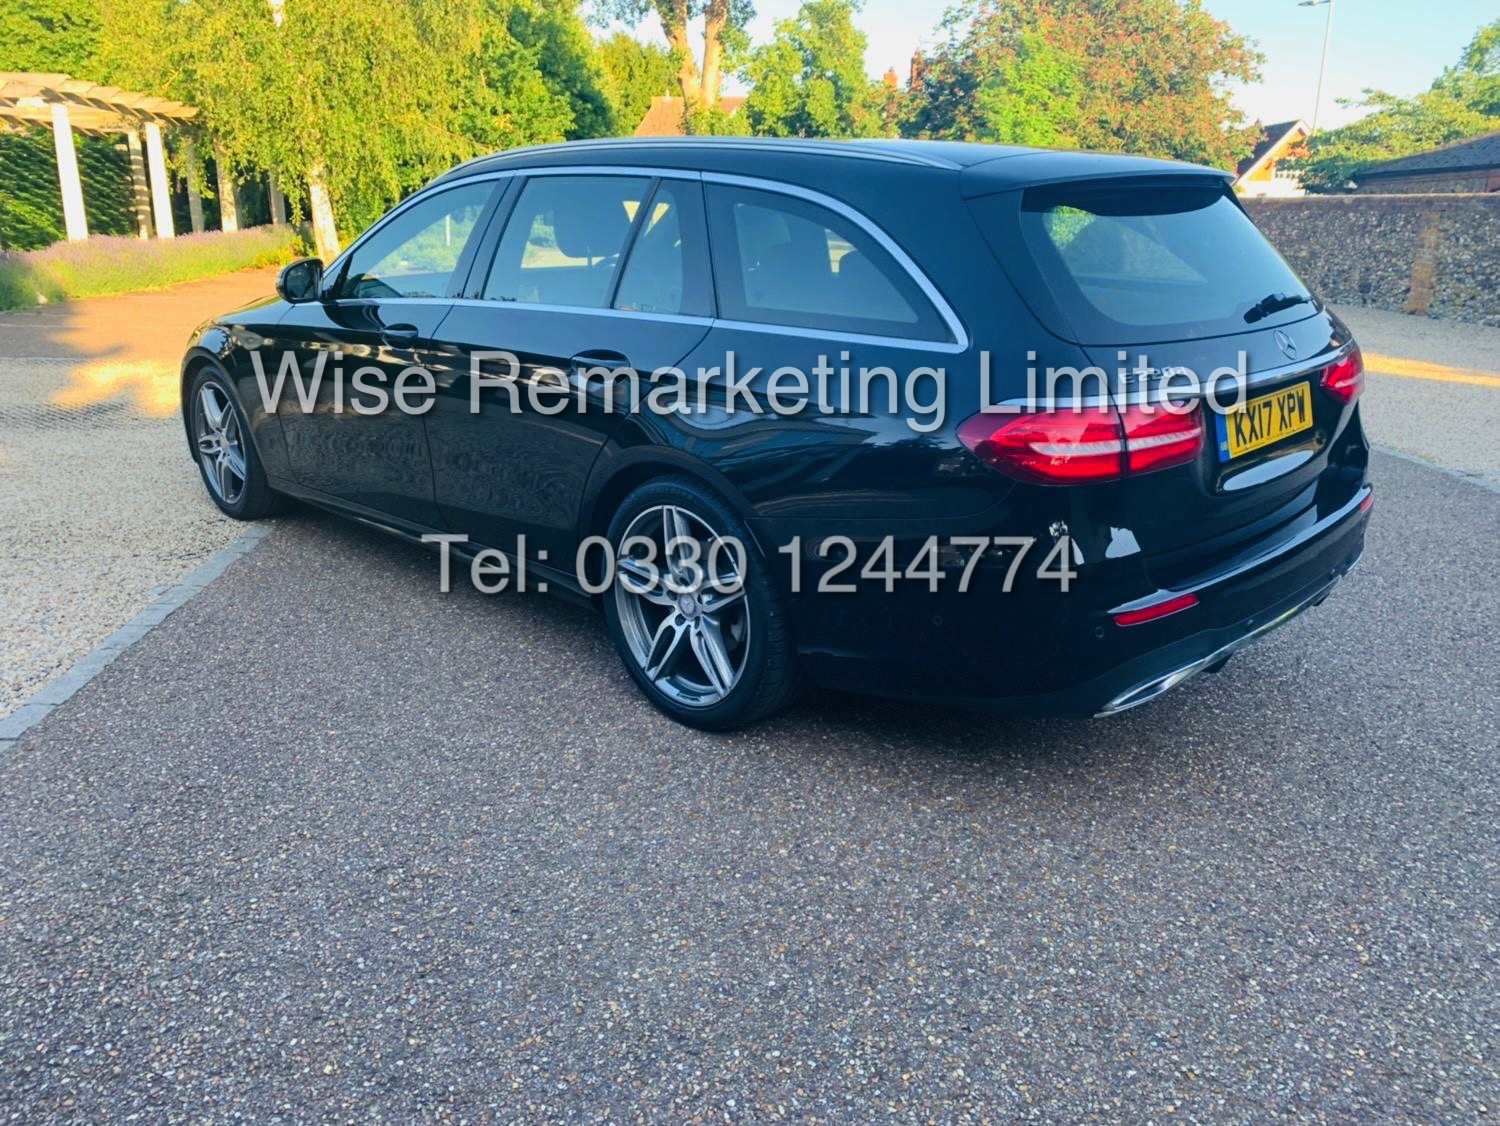 MERCEDES E CLASS ESTATE E220D AMG LINE 2017 / 9G -TRONIC / *LOW MILES* / 1 OWNER - Image 5 of 42